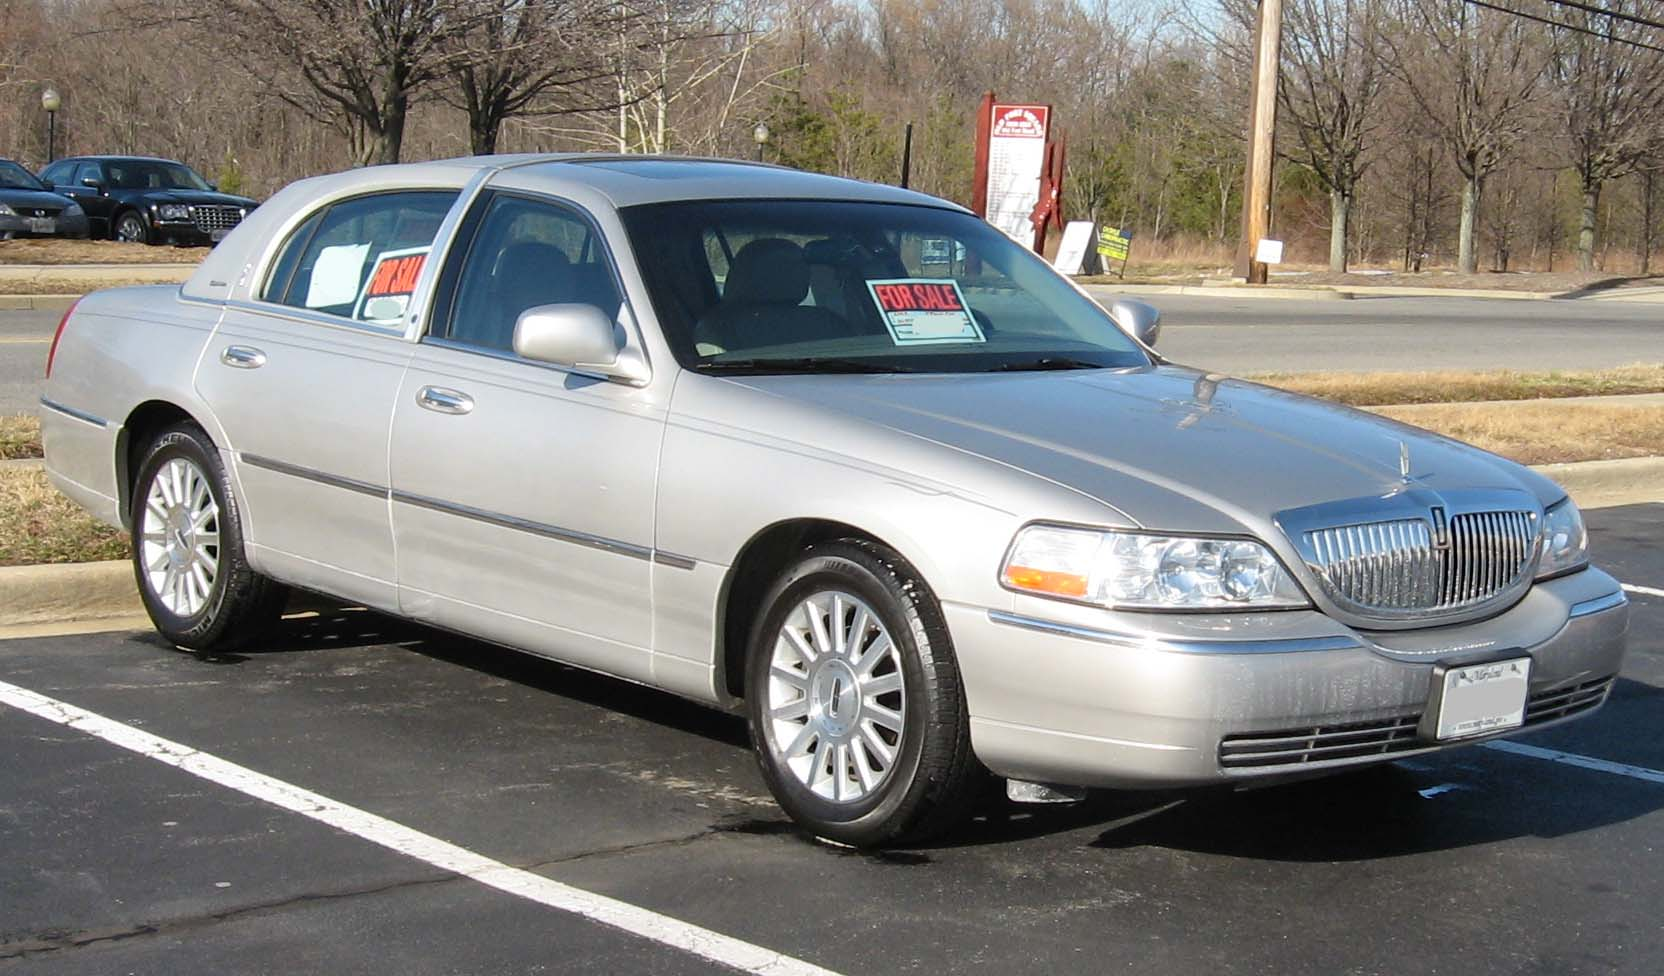 https://upload.wikimedia.org/wikipedia/commons/b/b6/2003-Lincoln-Town-Car-Signature-1.jpg